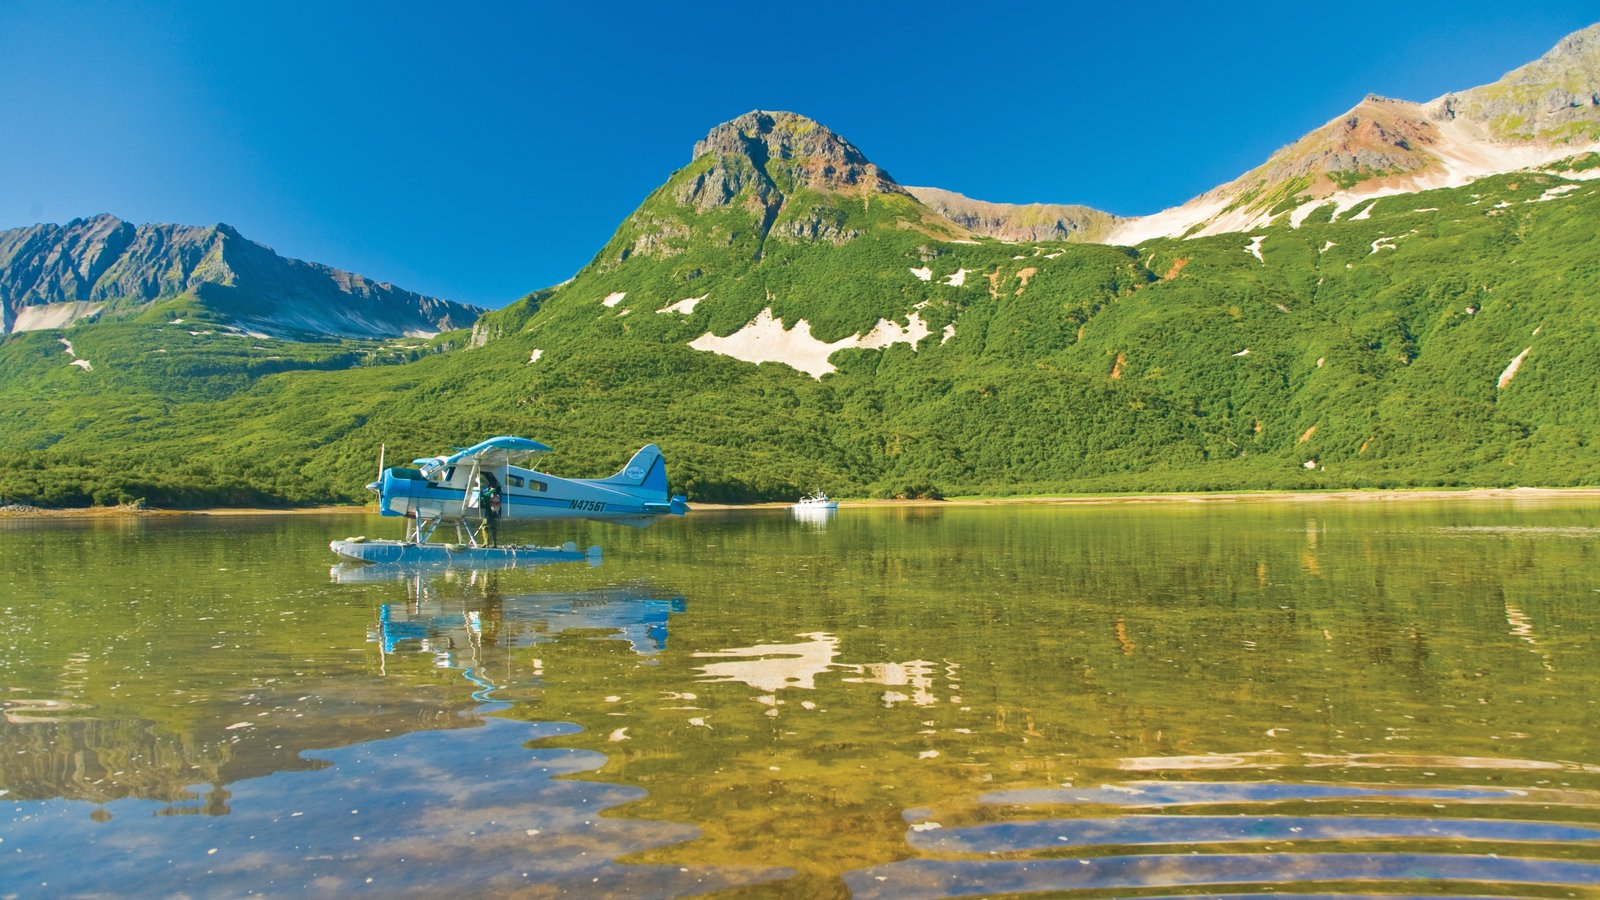 Southwest Alaska which includes a lake or waterhole, mountains and aircraft